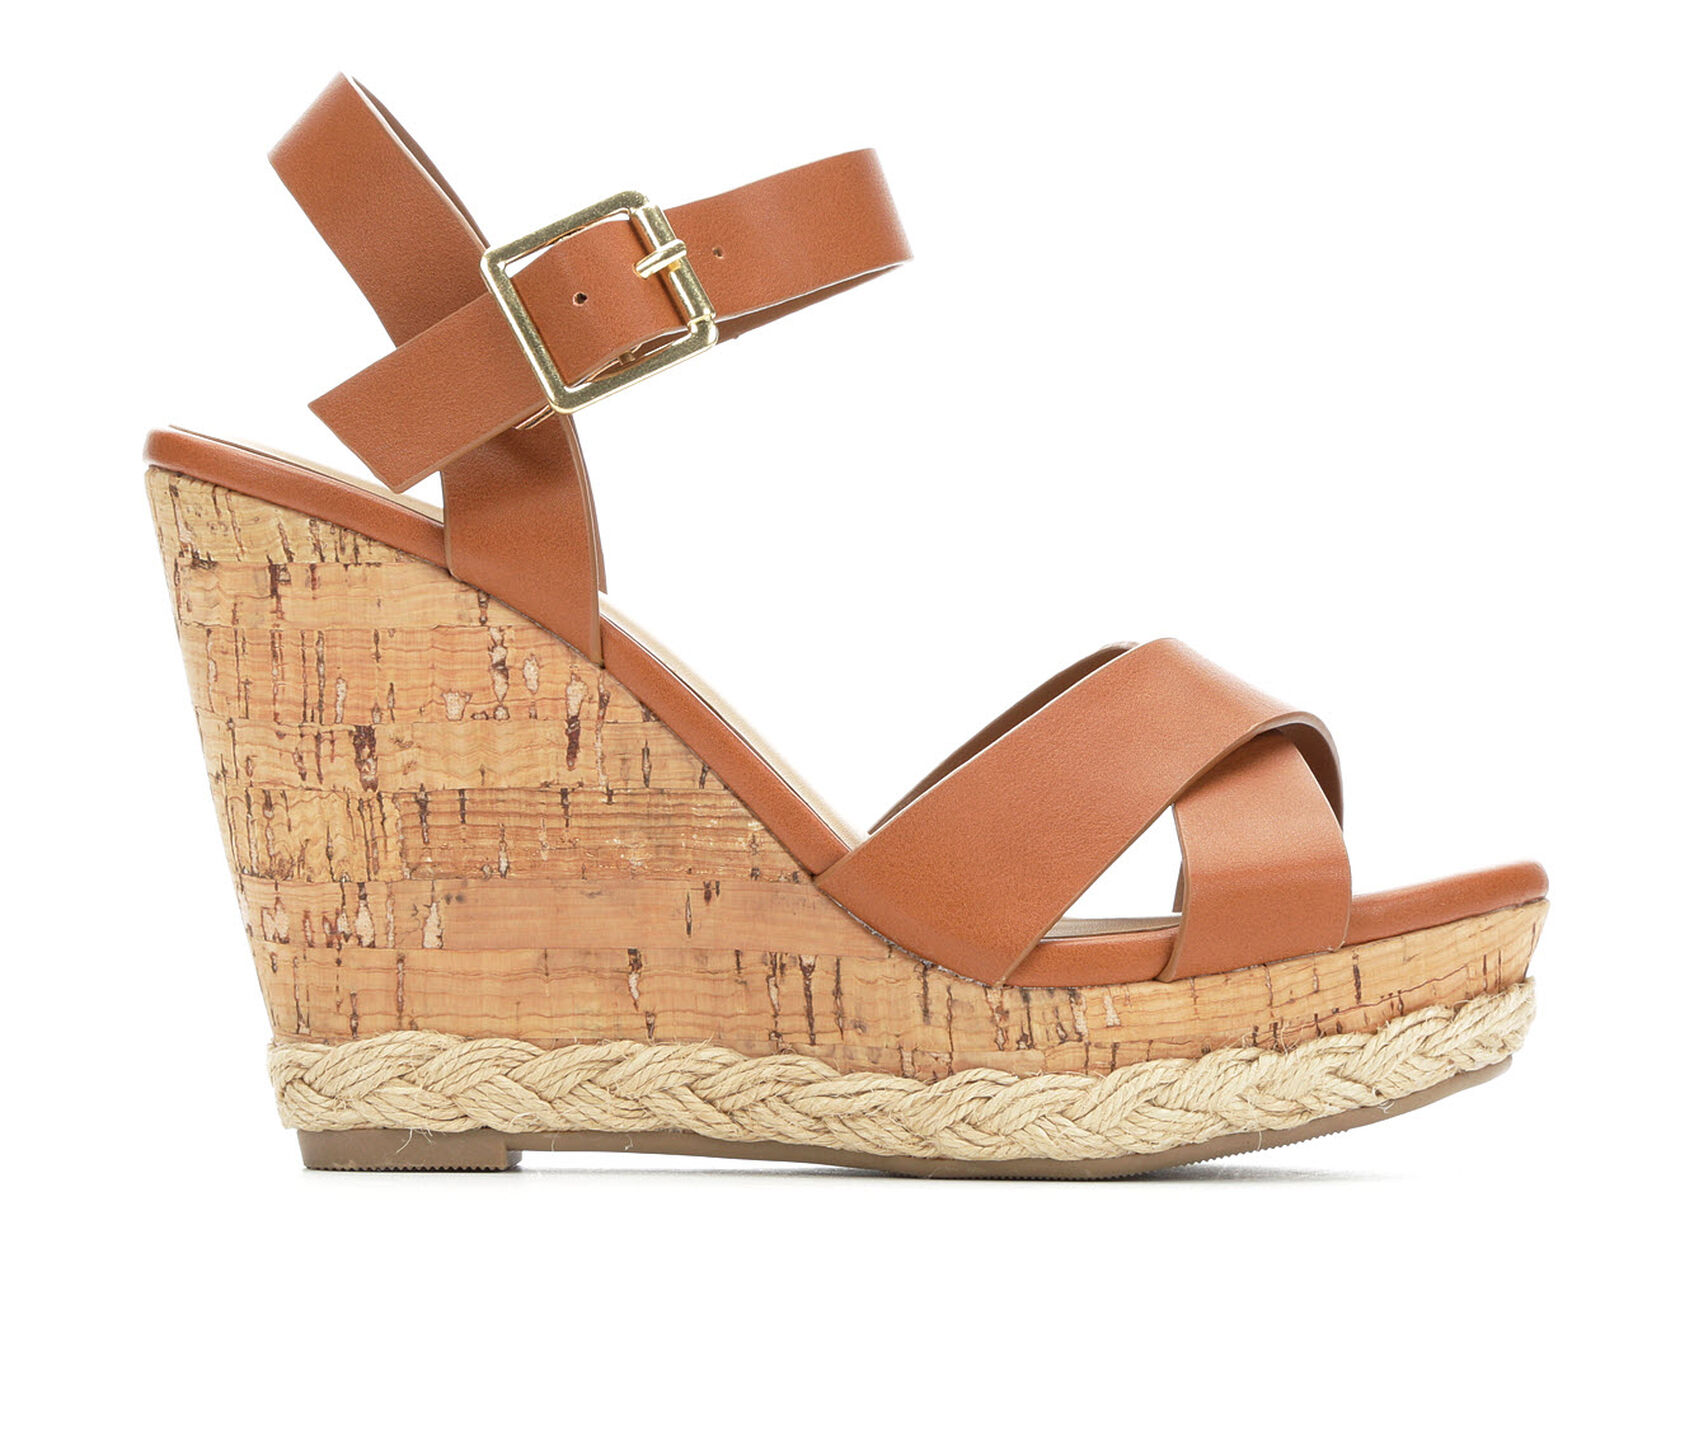 a730aea1319 ... Y-Not Sarah Strappy Wedge Sandals. Previous